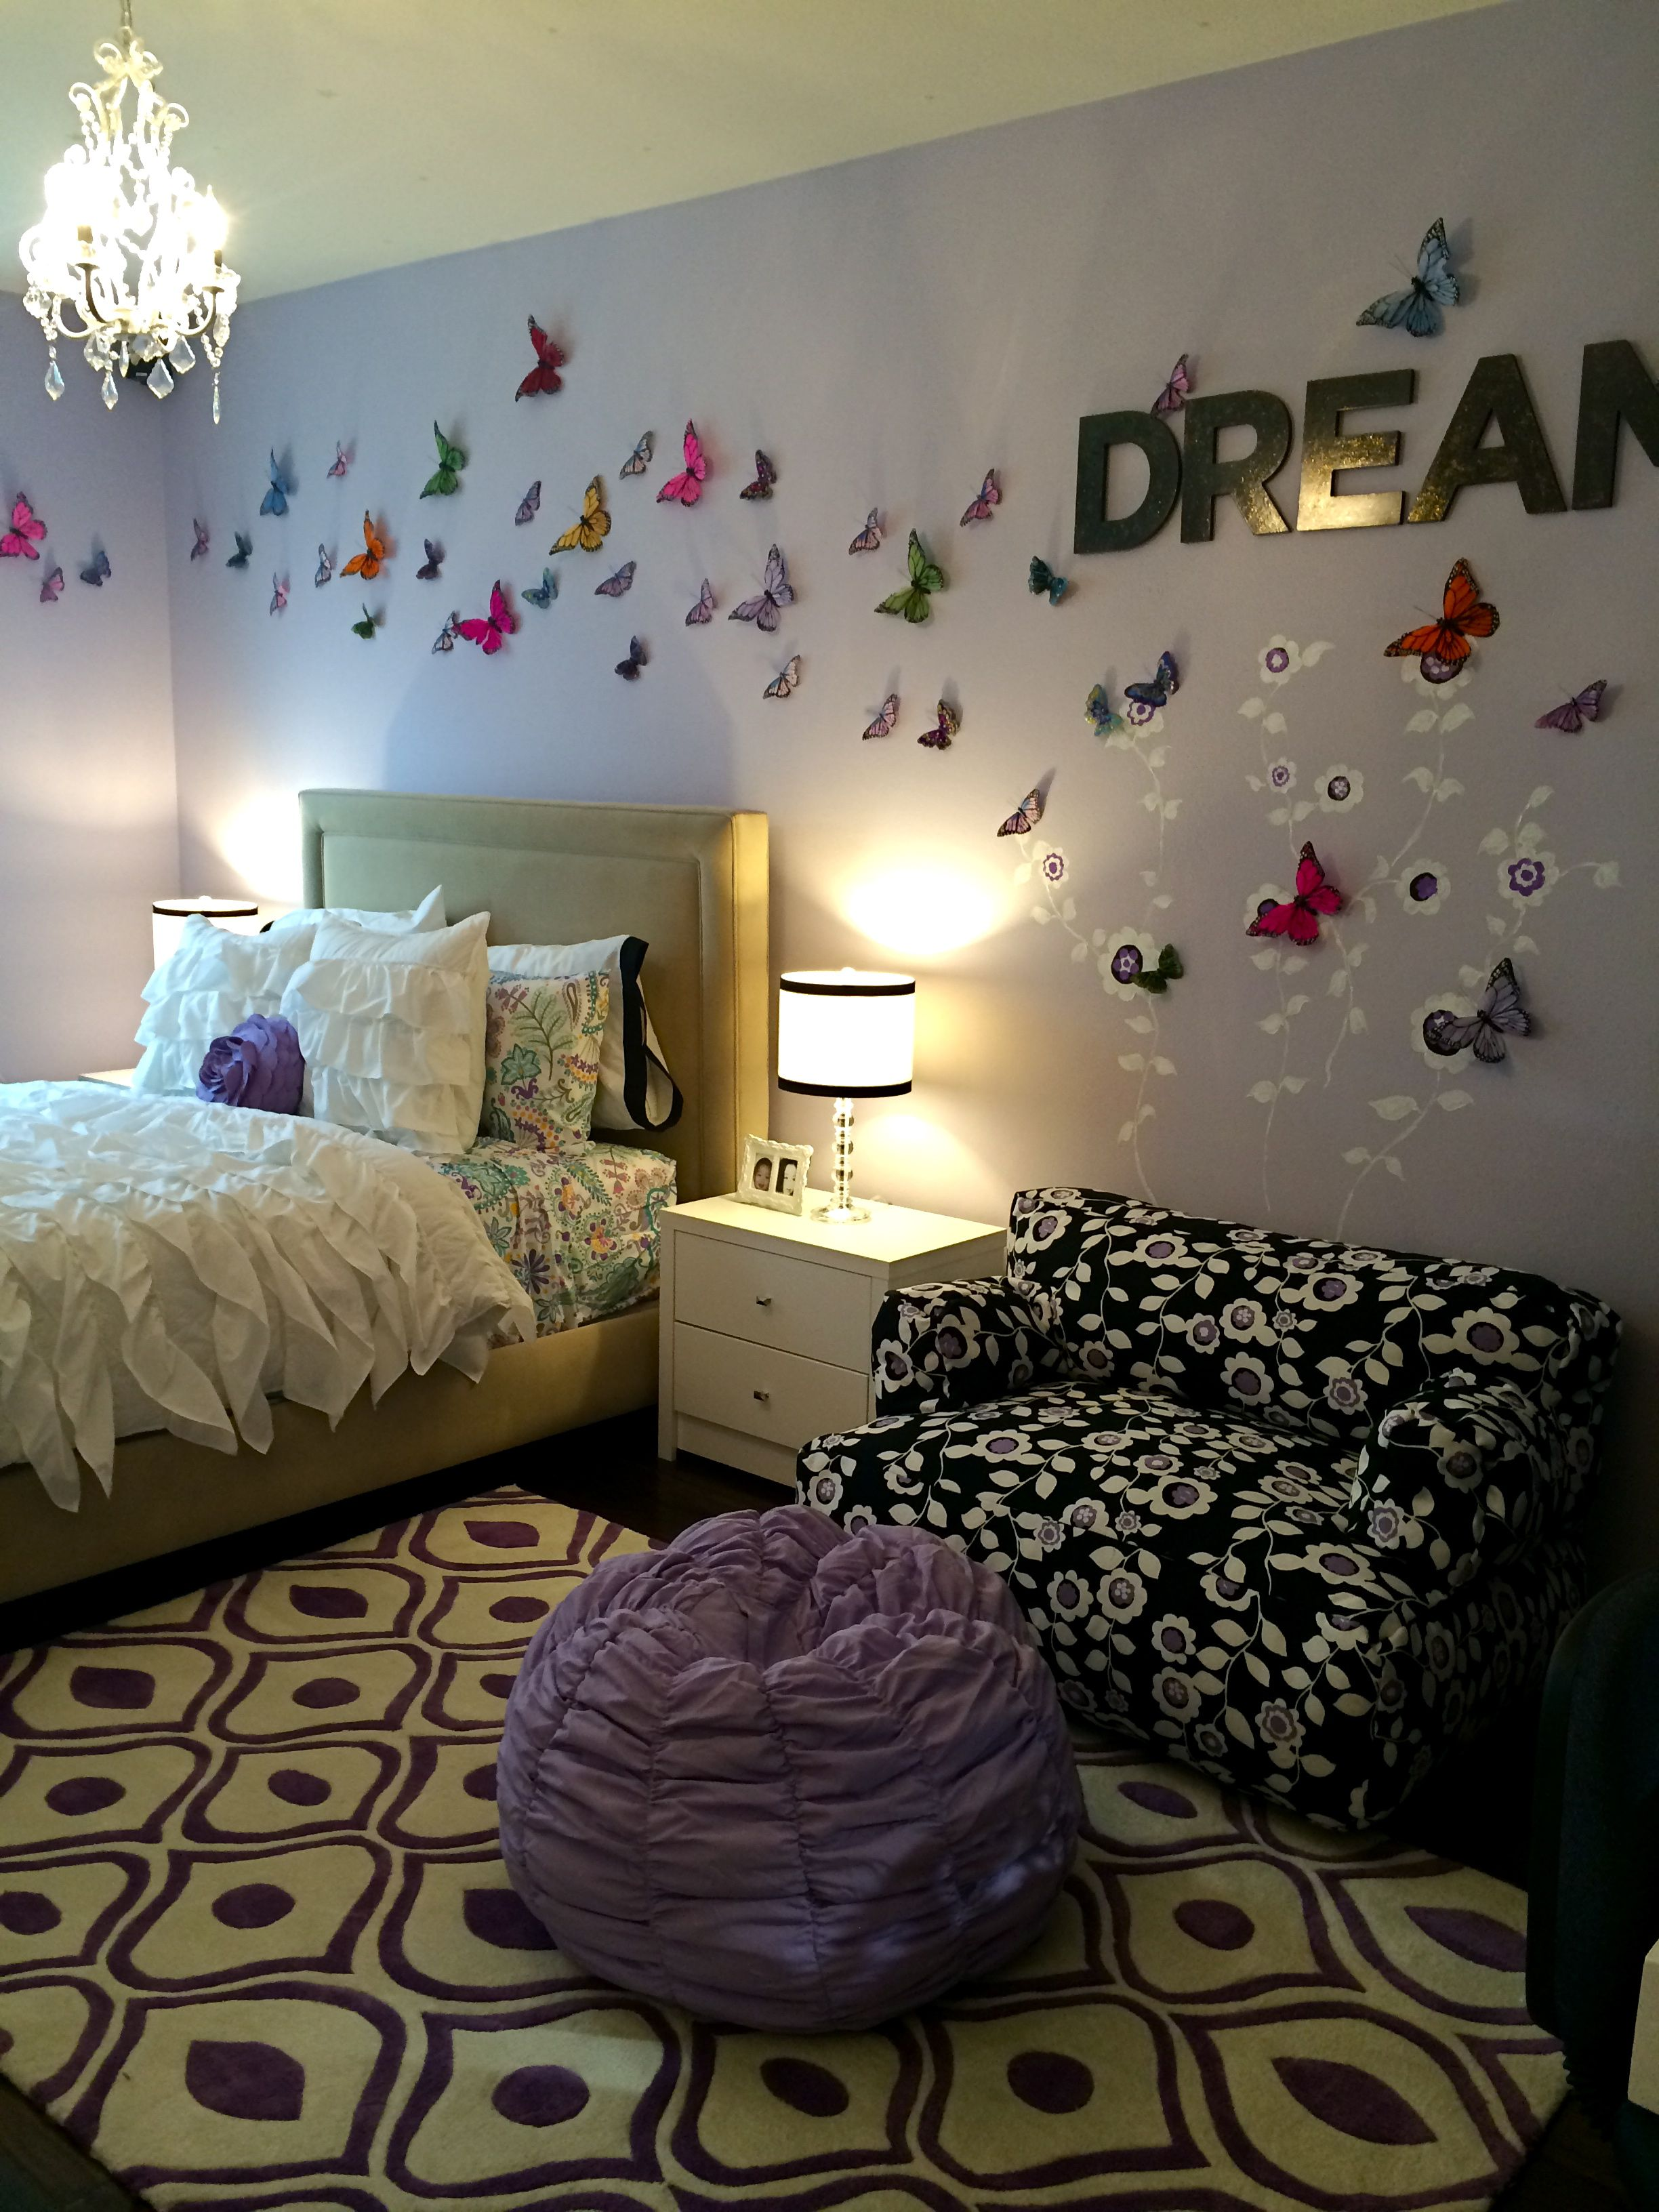 A 10 year old girls dream bedroom contact for Room decor for 6 year old boy